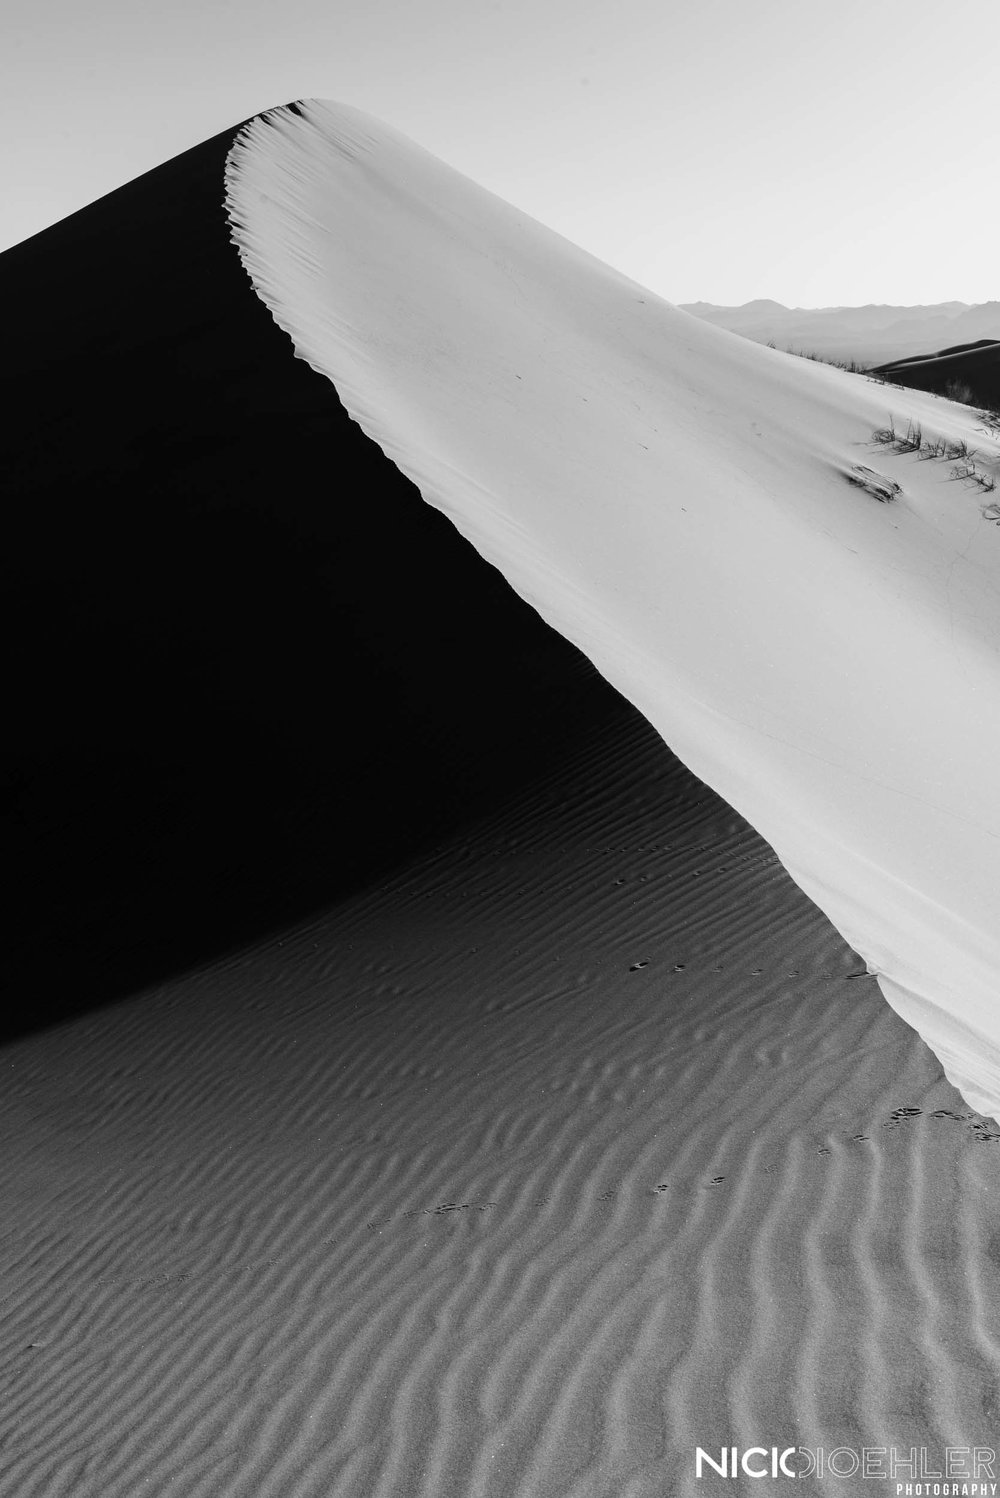 Mojave National Preserve: A beautiful sand dune being touch by the morning light.